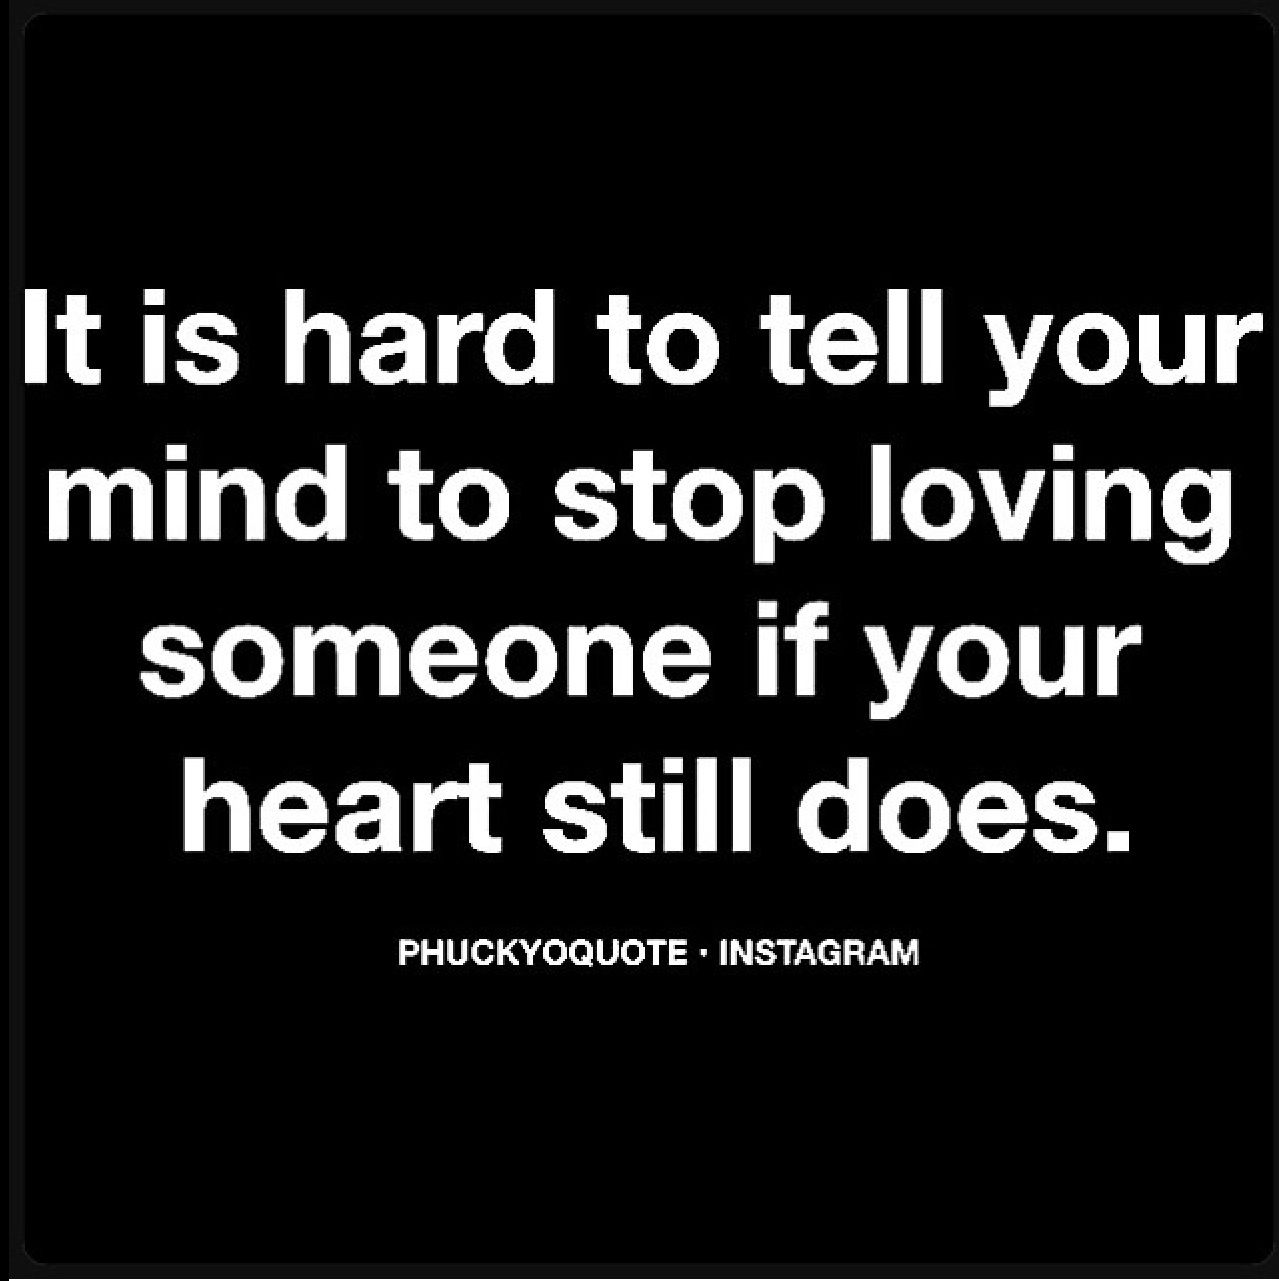 Inspirational Love Quotes And Sayings Quotes  Inspirational  Life  Love Quotes & Sayings  Pinterest